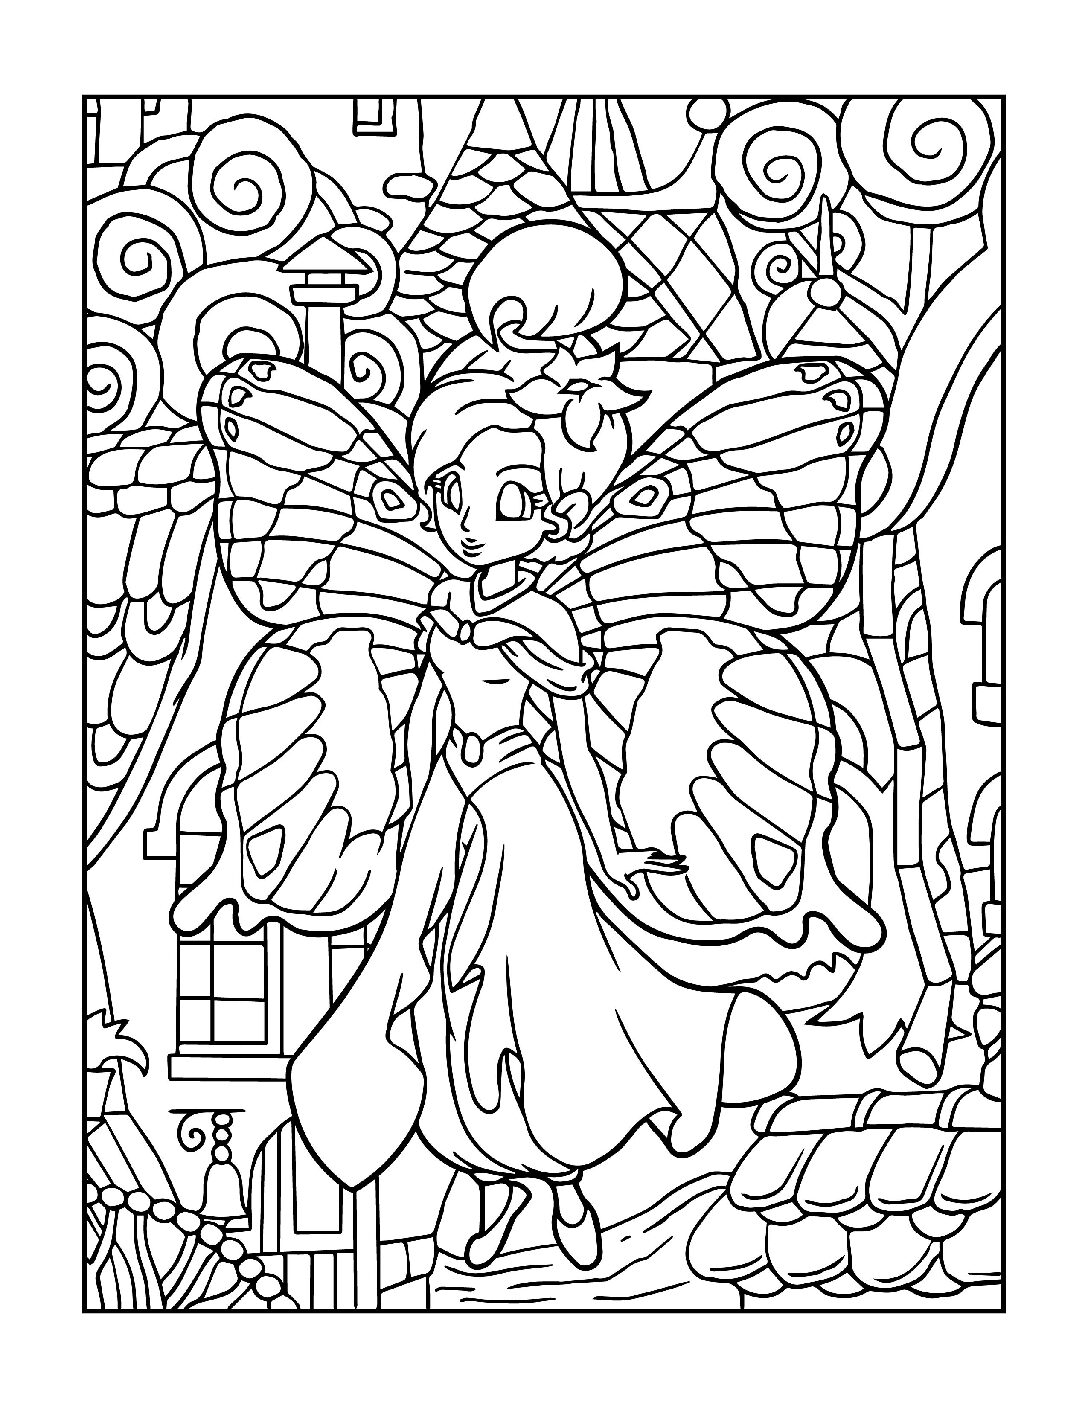 Coloring-Pages-Fairies-15-01-pdf Free Printable Fairy Colouring Pages